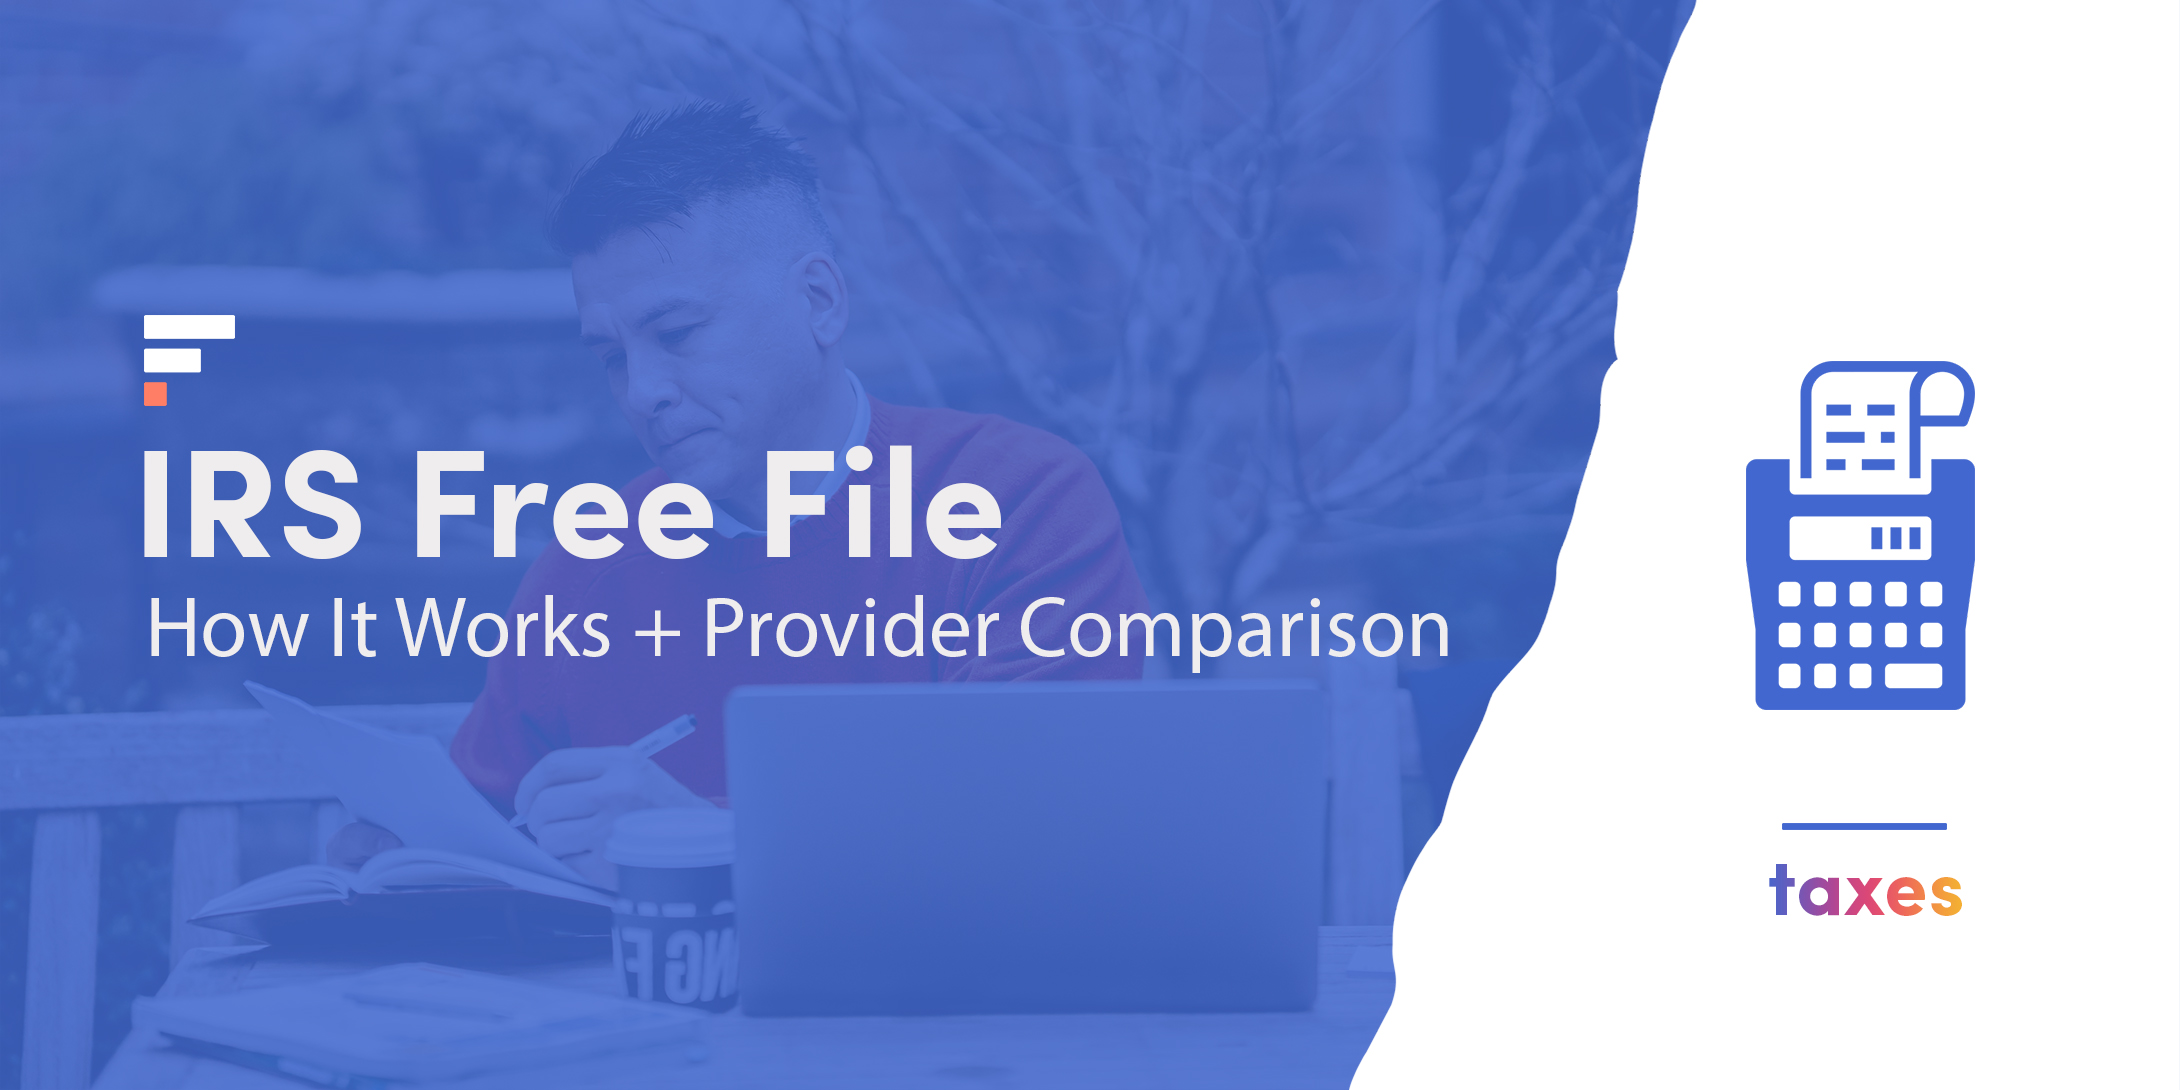 IRS Free File: How It Works + Provider Comparison